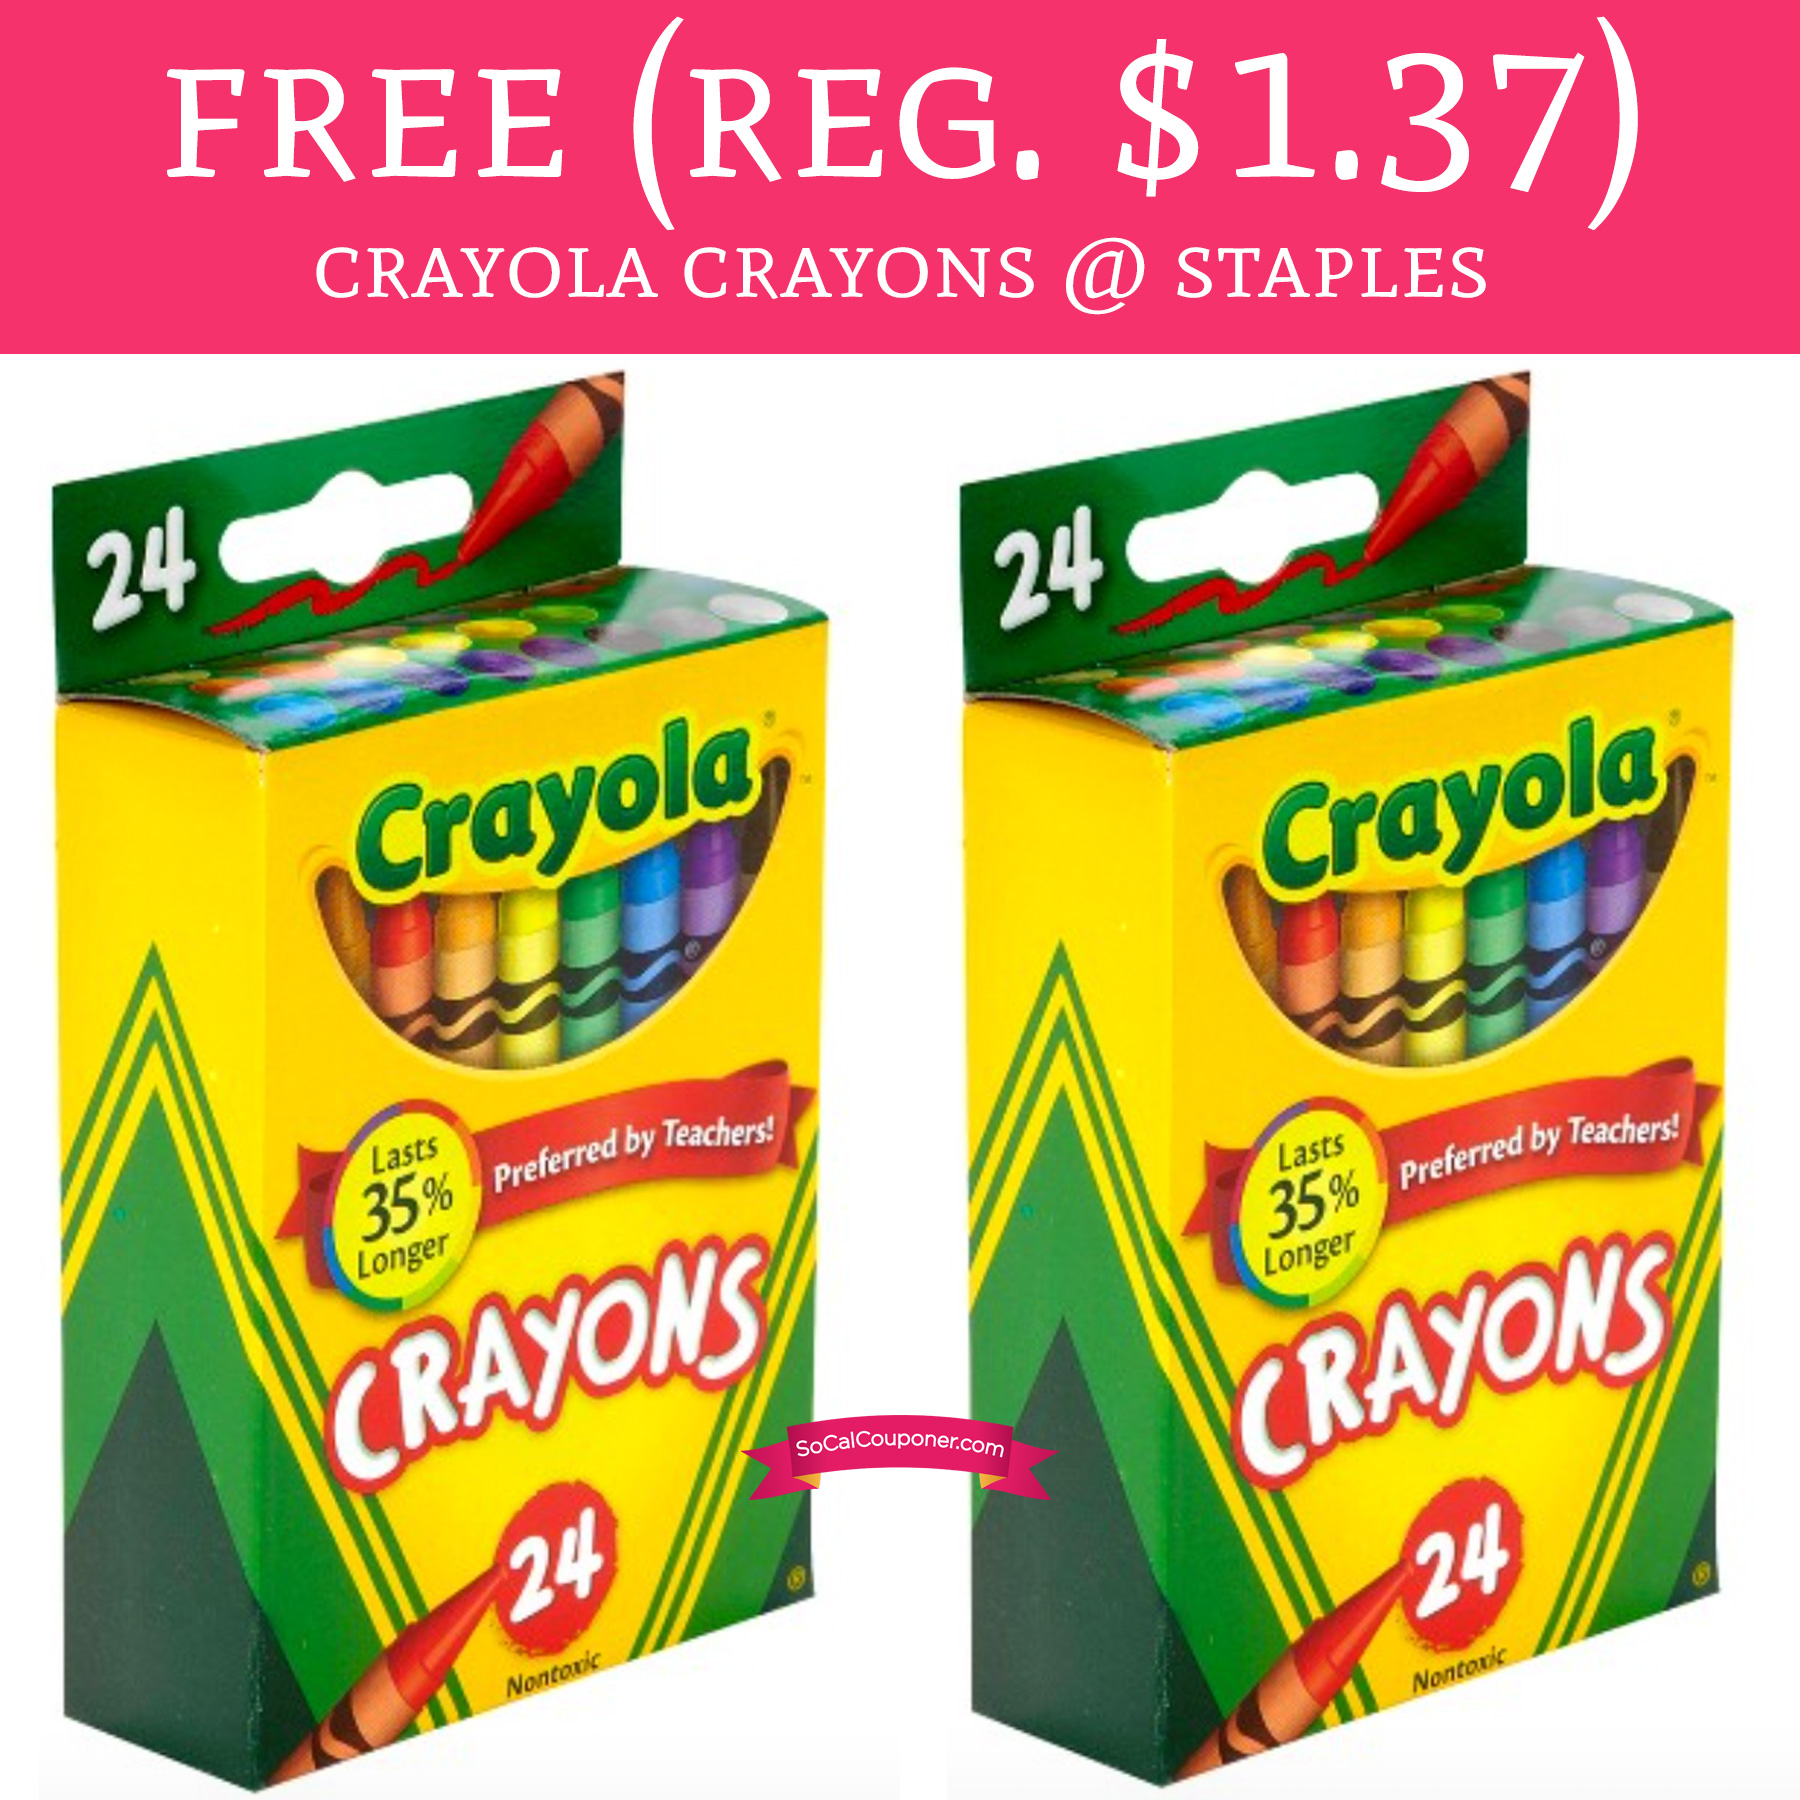 free regular 137 crayola crayons 24 count staples deal hunting babe